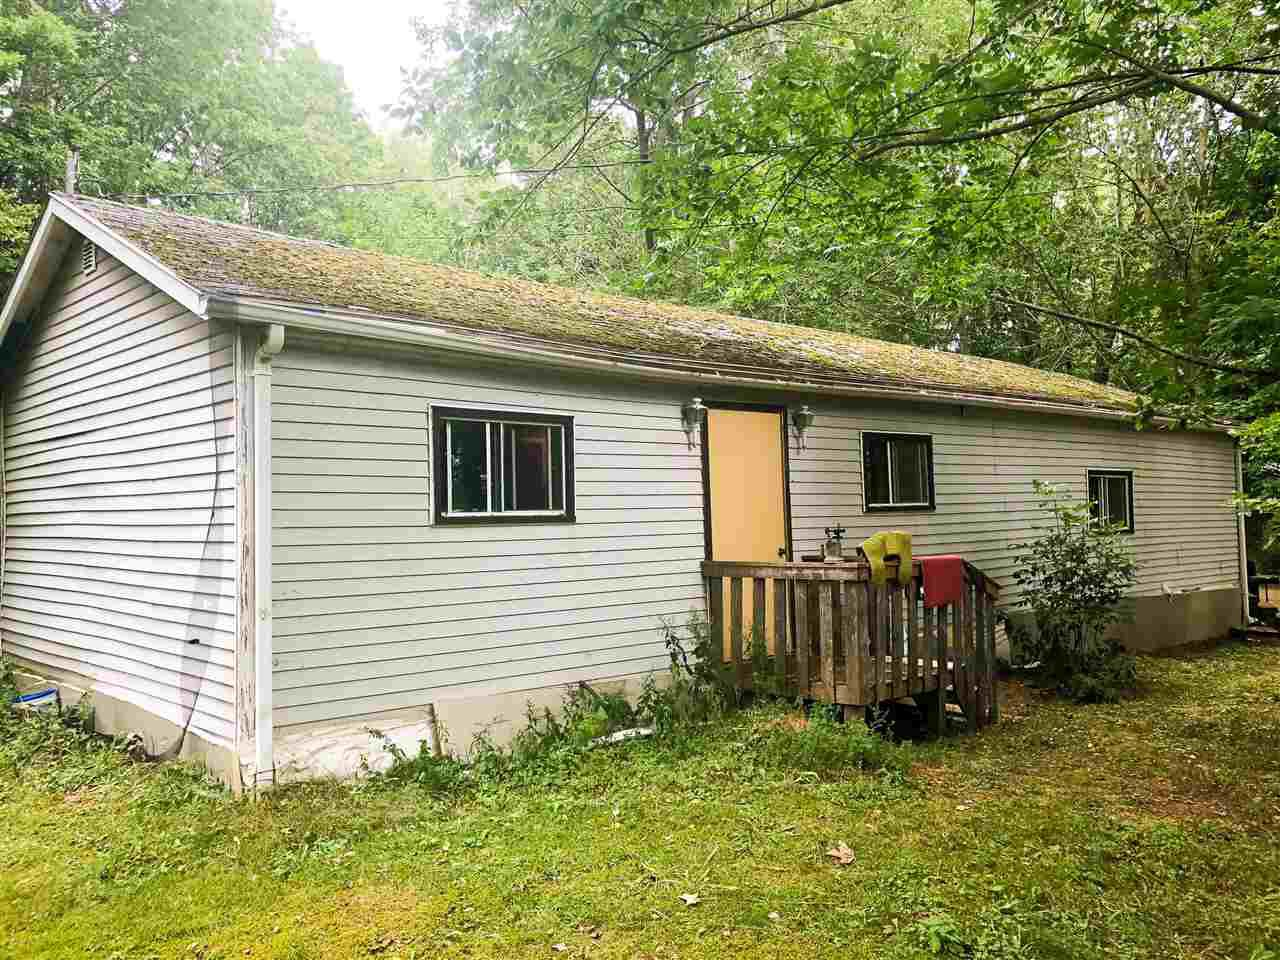 Main Photo: 10085 HIGHWAY 221 in Habitant: 404-Kings County Residential for sale (Annapolis Valley)  : MLS®# 201905188